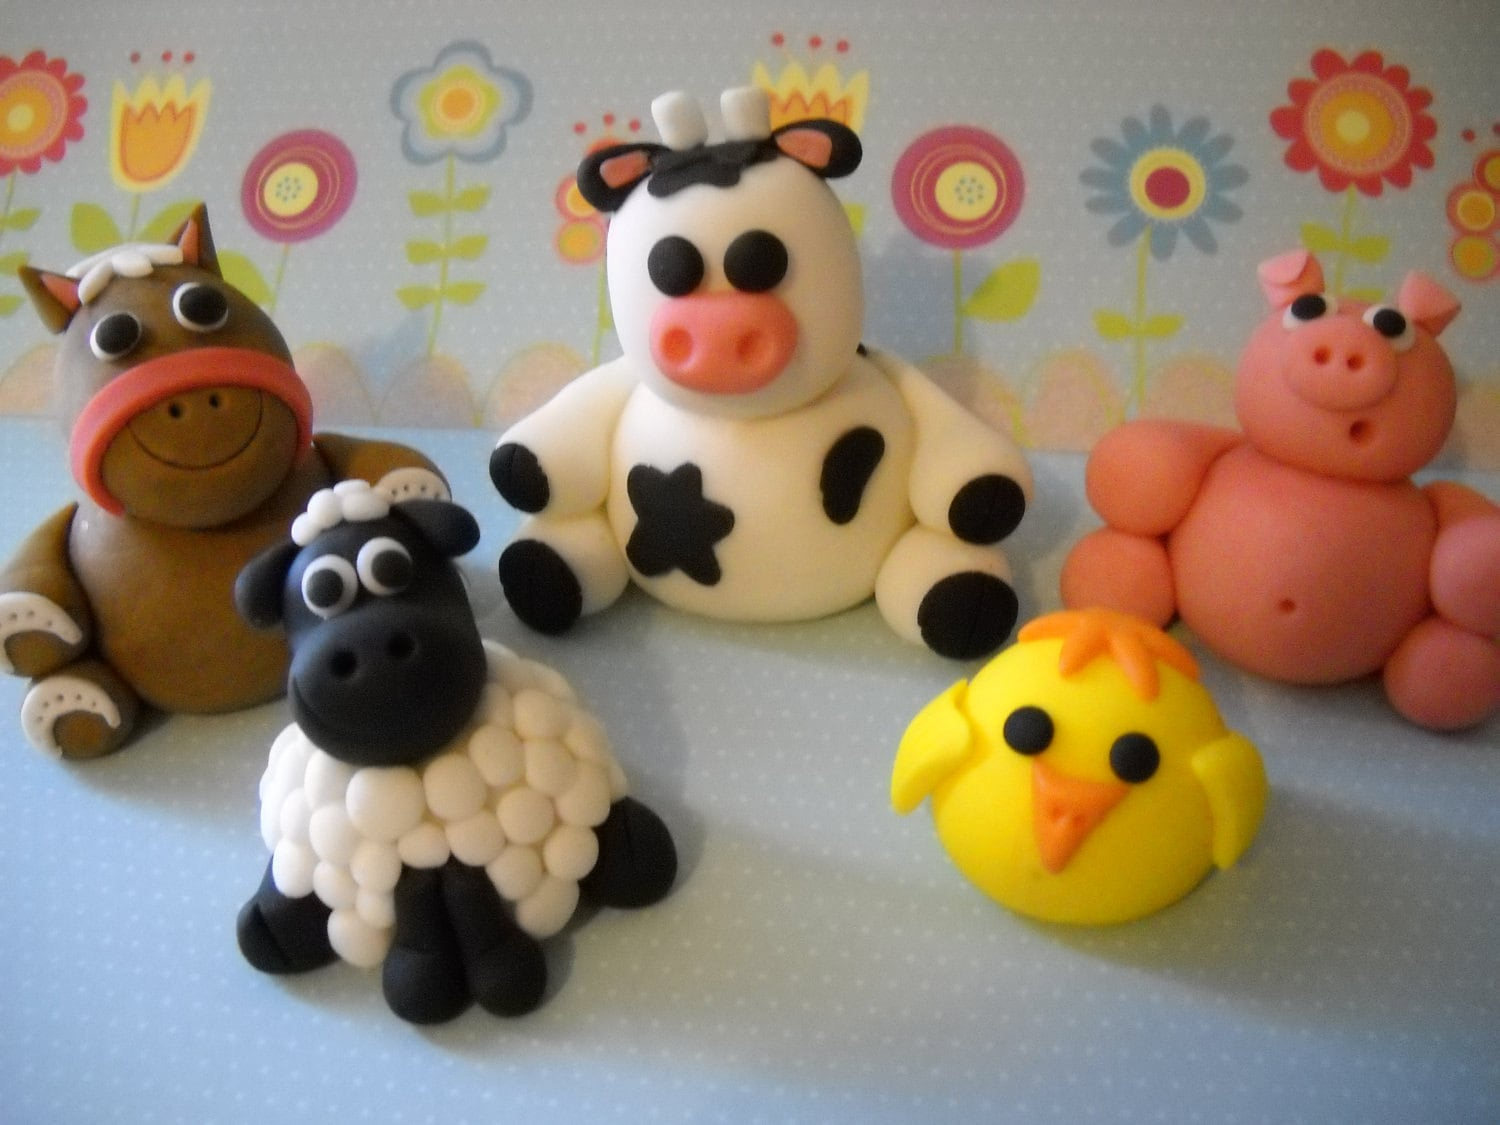 Farm animals tractor edible cake cupcakes topper image for Animal cake decoration